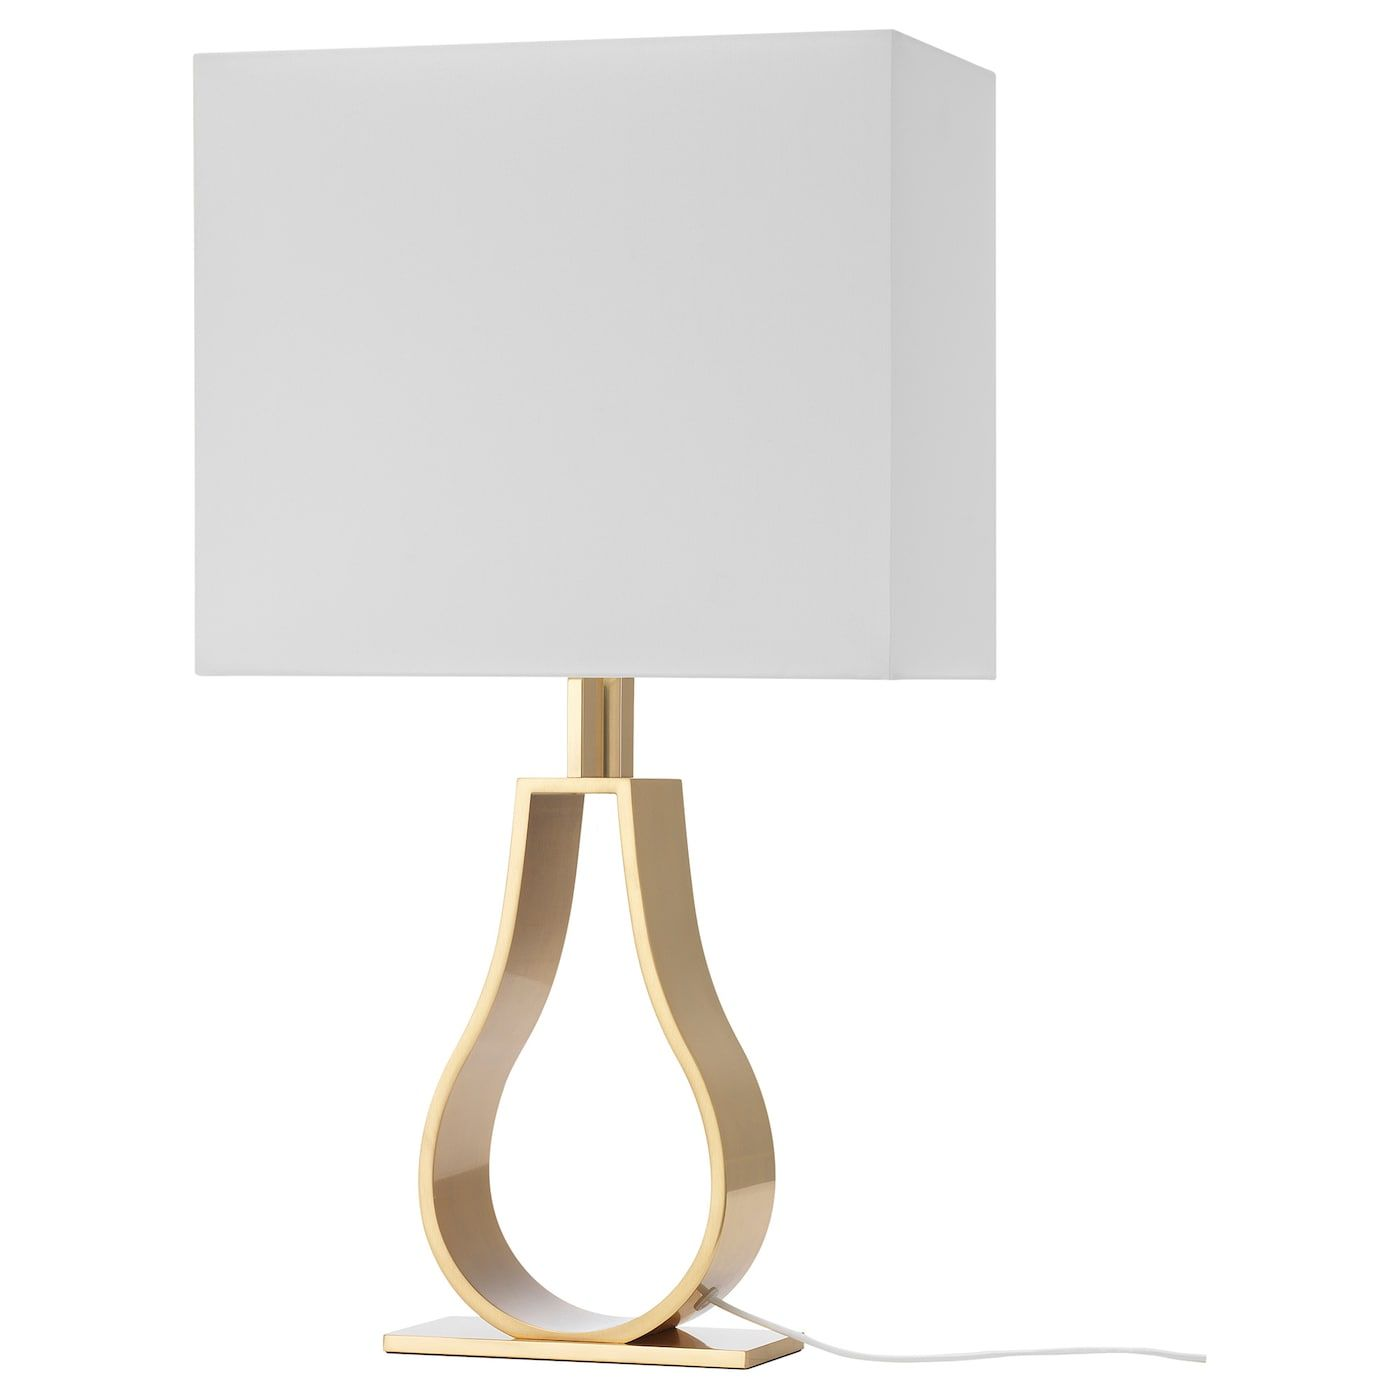 KLABB Table lamp with LED bulb, off white, brass color